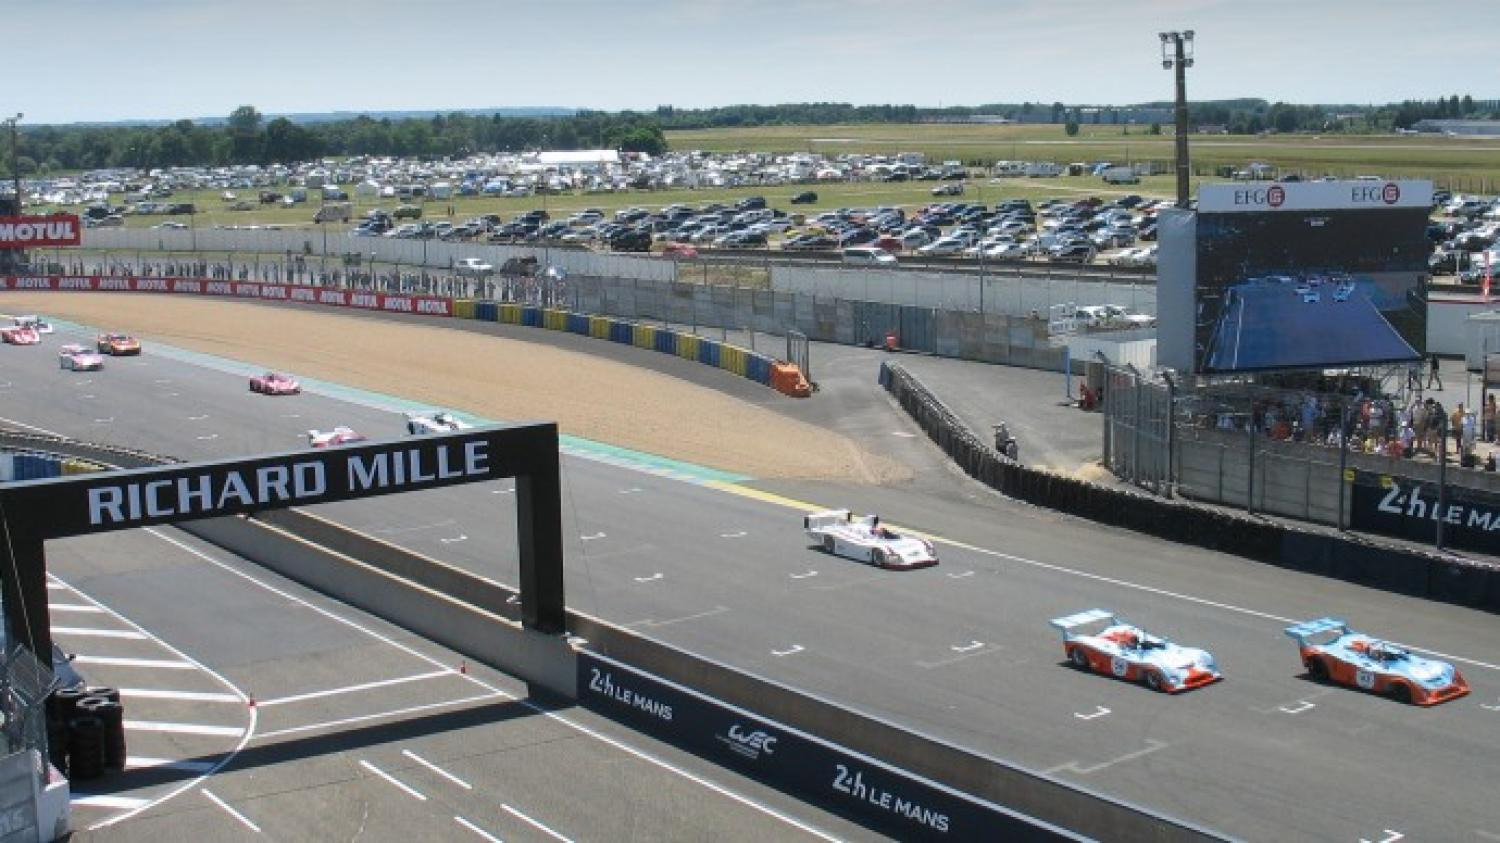 Le Mans Classic 2016 - The latest update